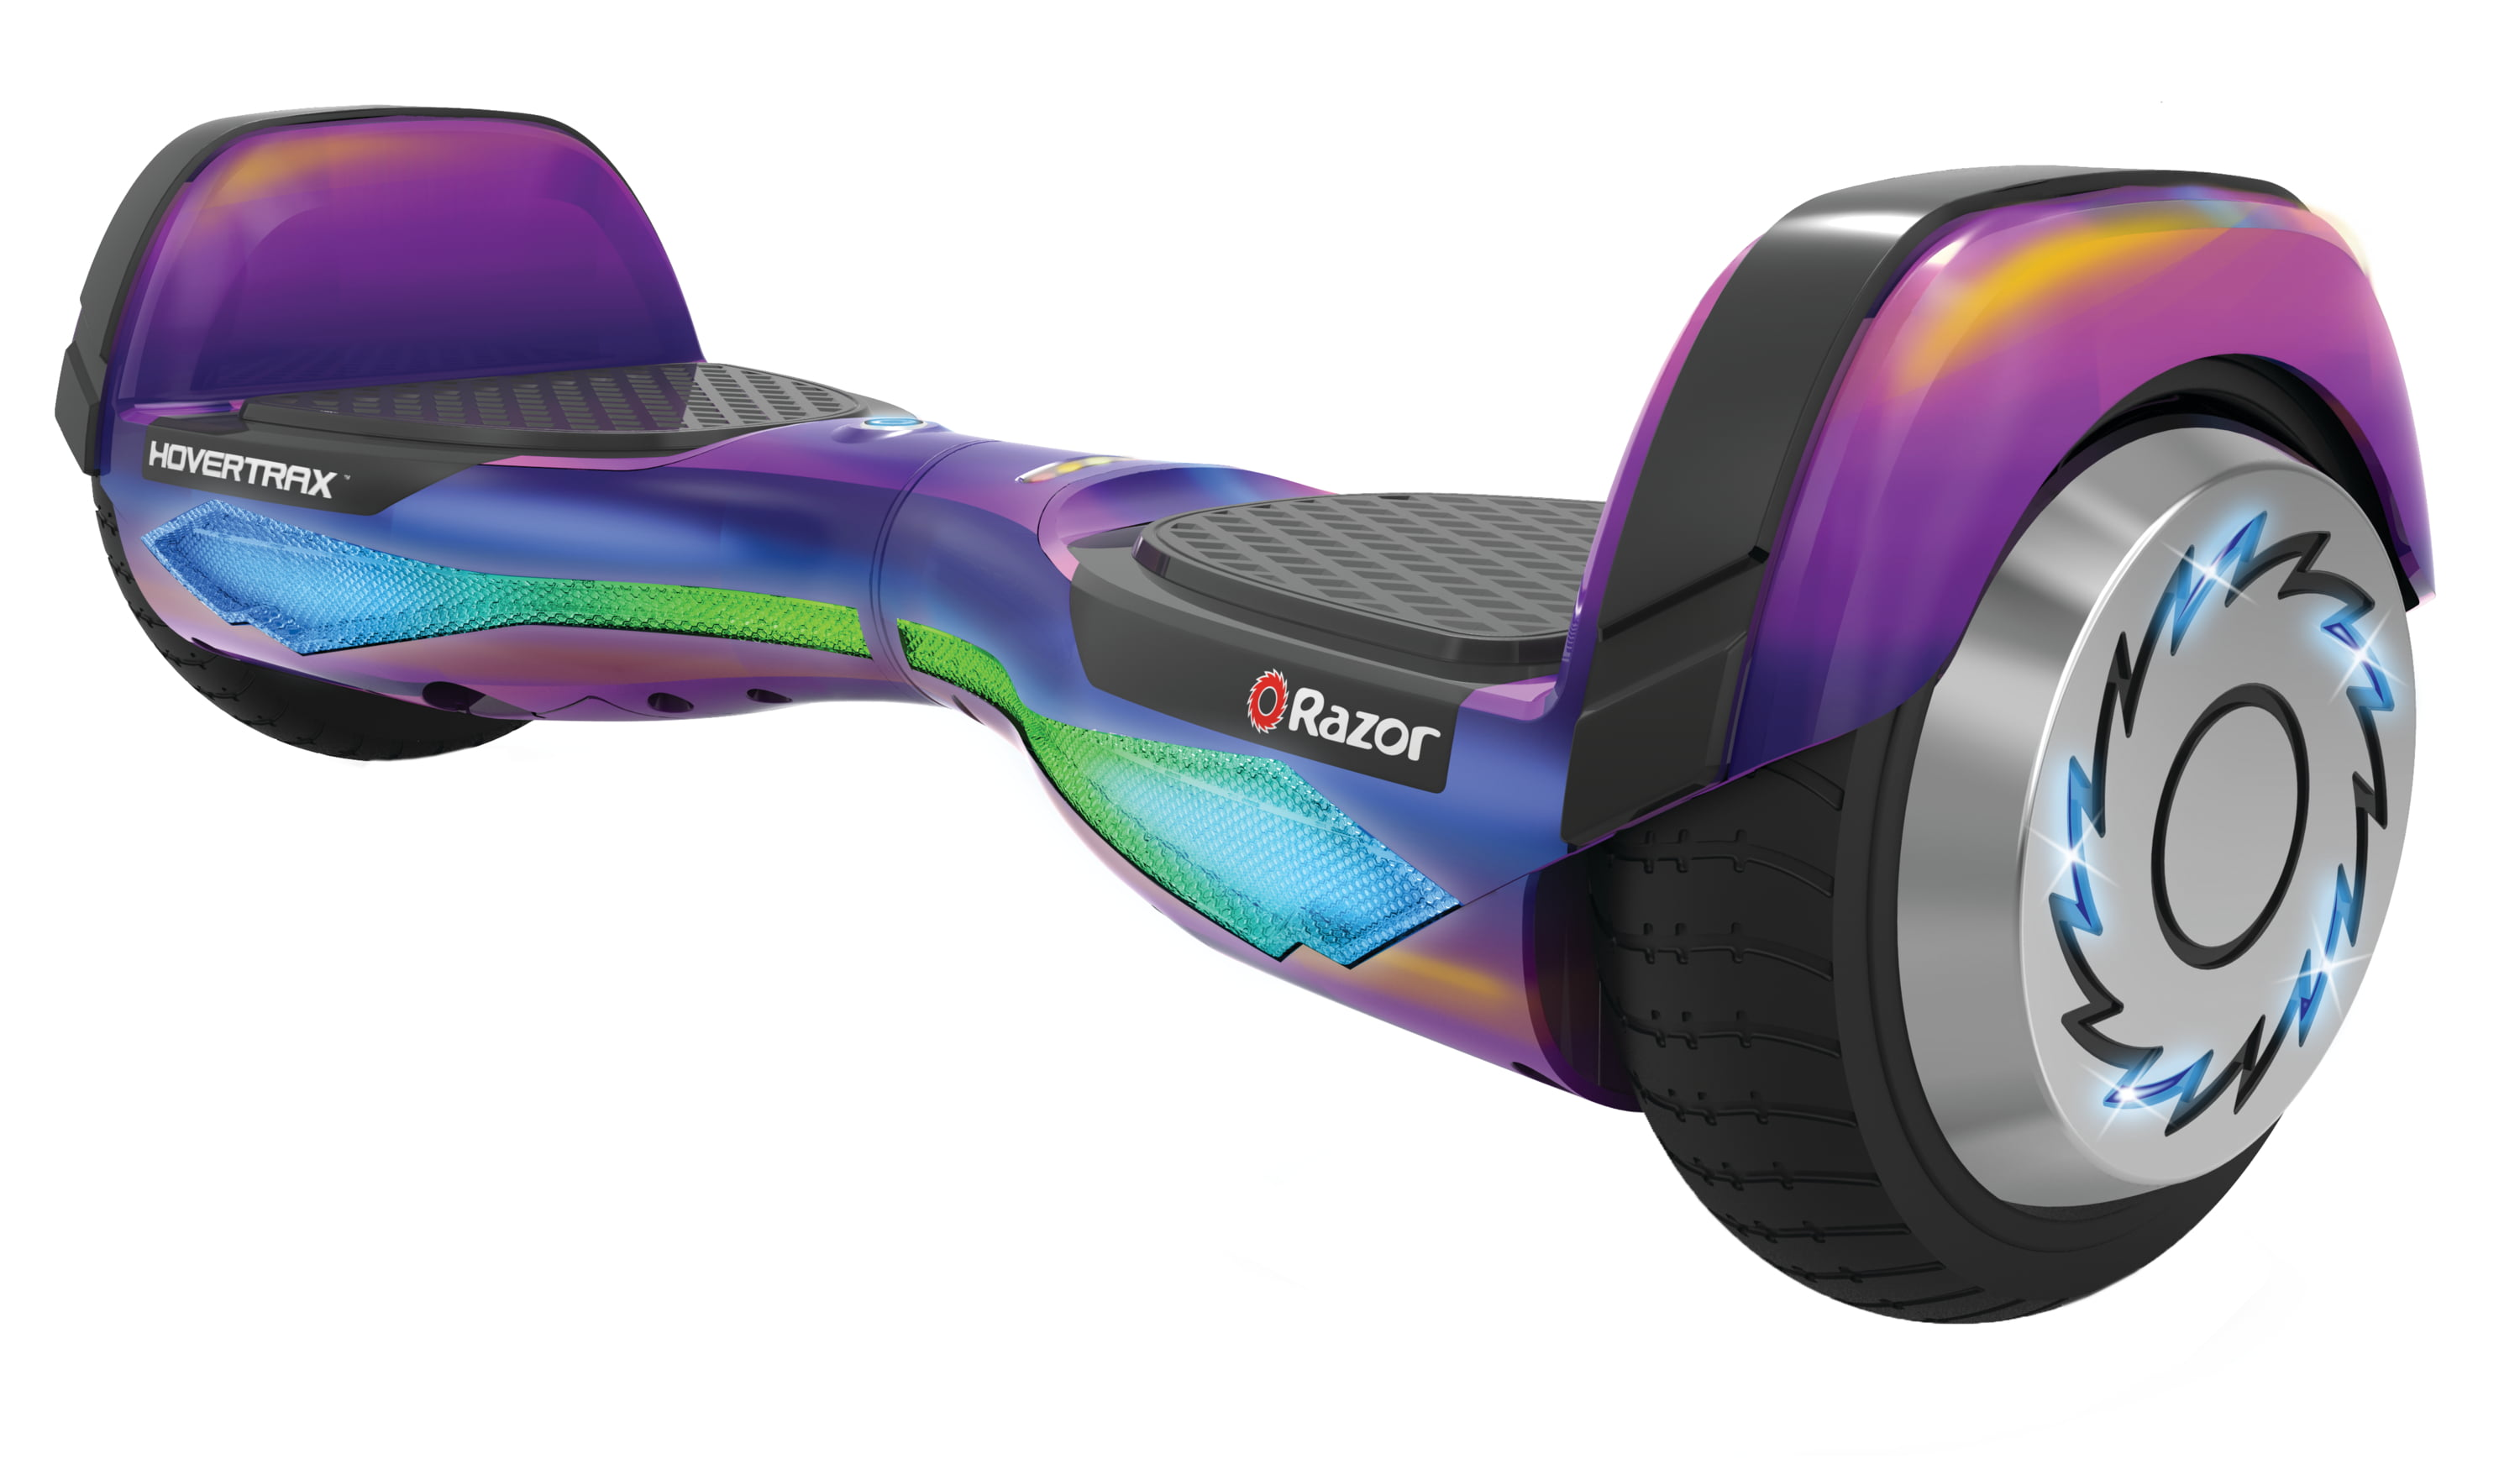 Razor HoverTrax DLX Hoverboard Self-Balancing Smart Scooter - Spectrum